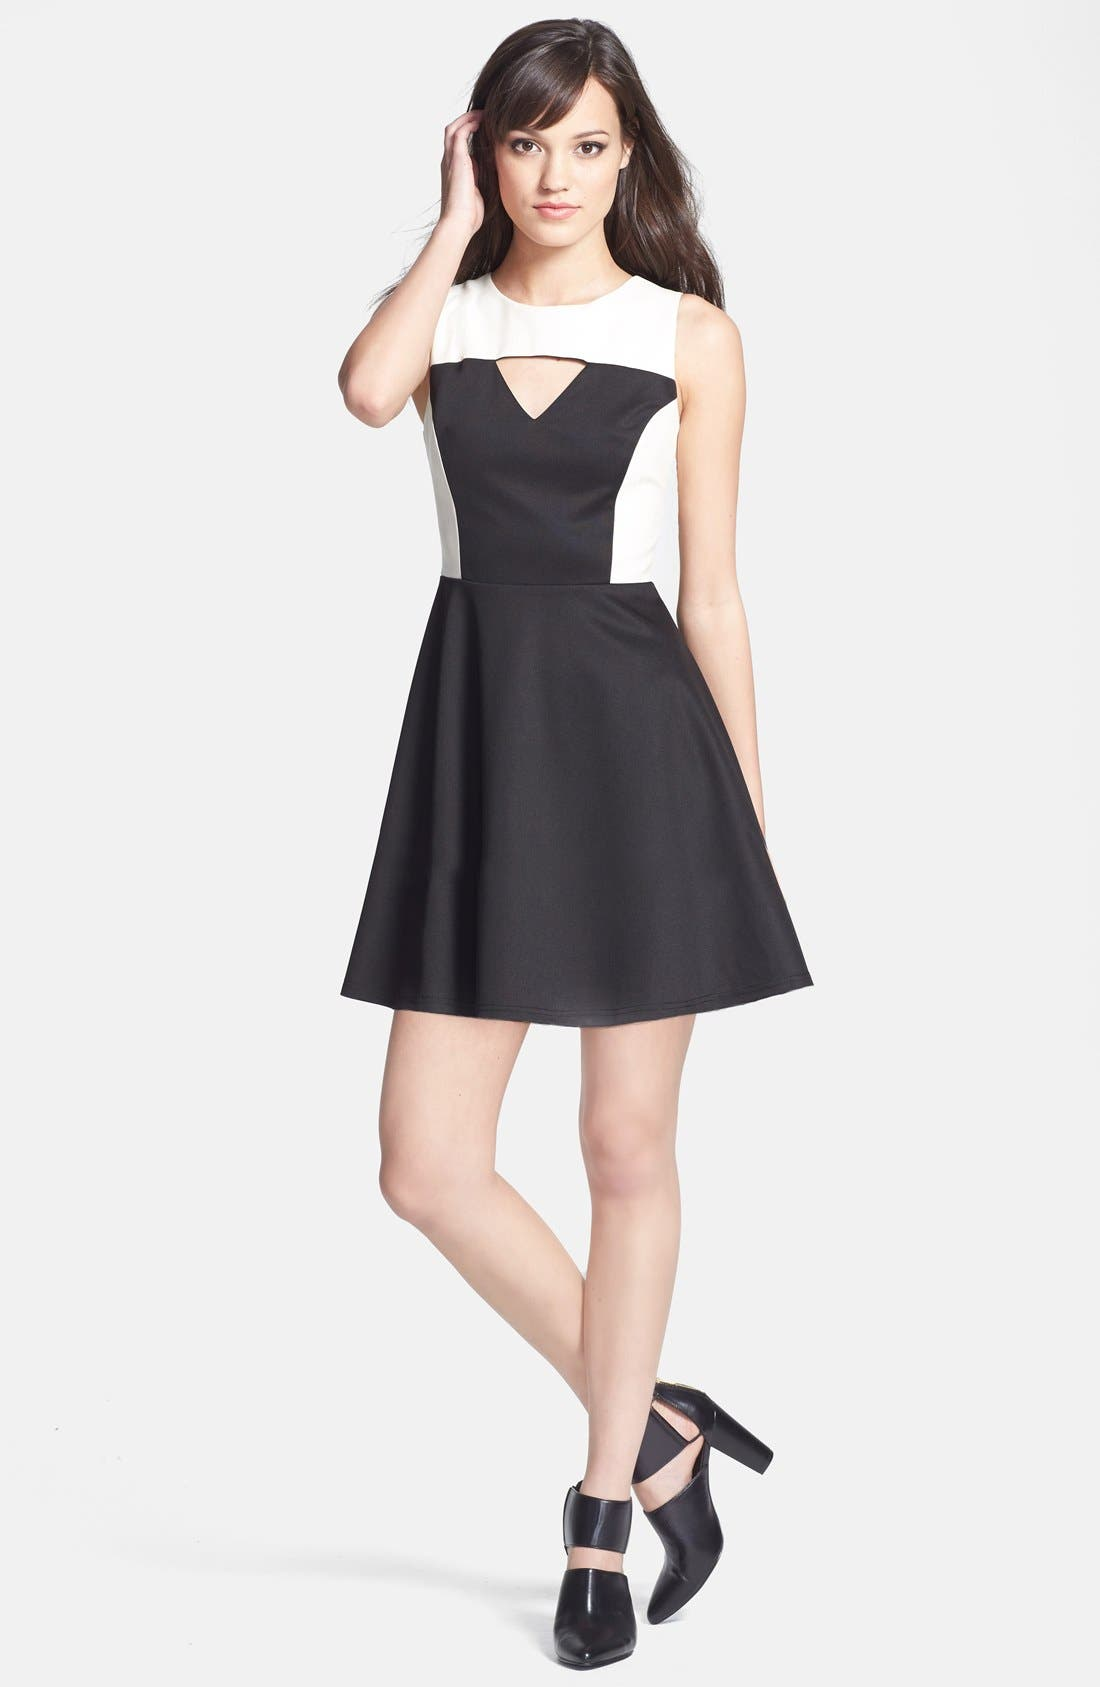 Alternate Image 3  - MM Couture Cutout Faux Leather Contrast Ponte Knit Fit & Flare Dress